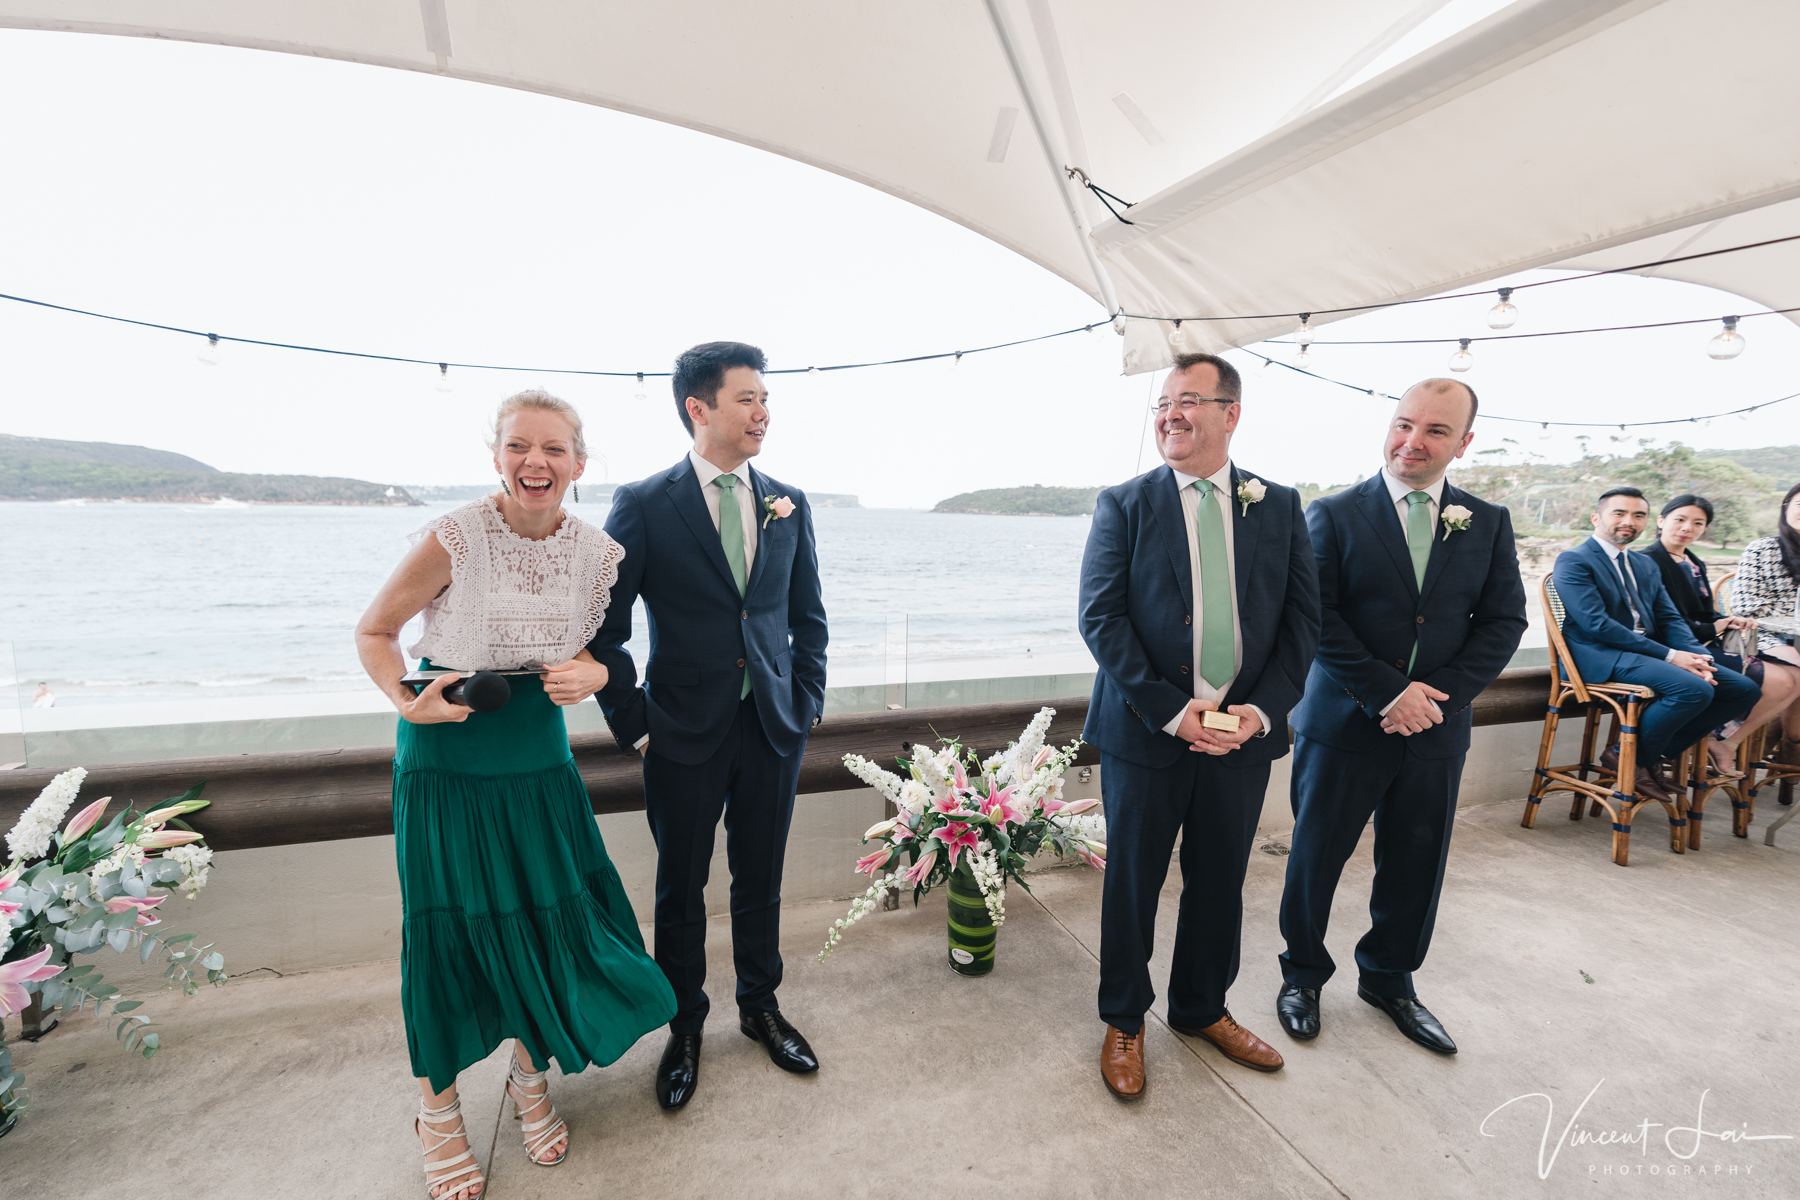 Wedding at Bathers' Pavilion Balmoral Beach